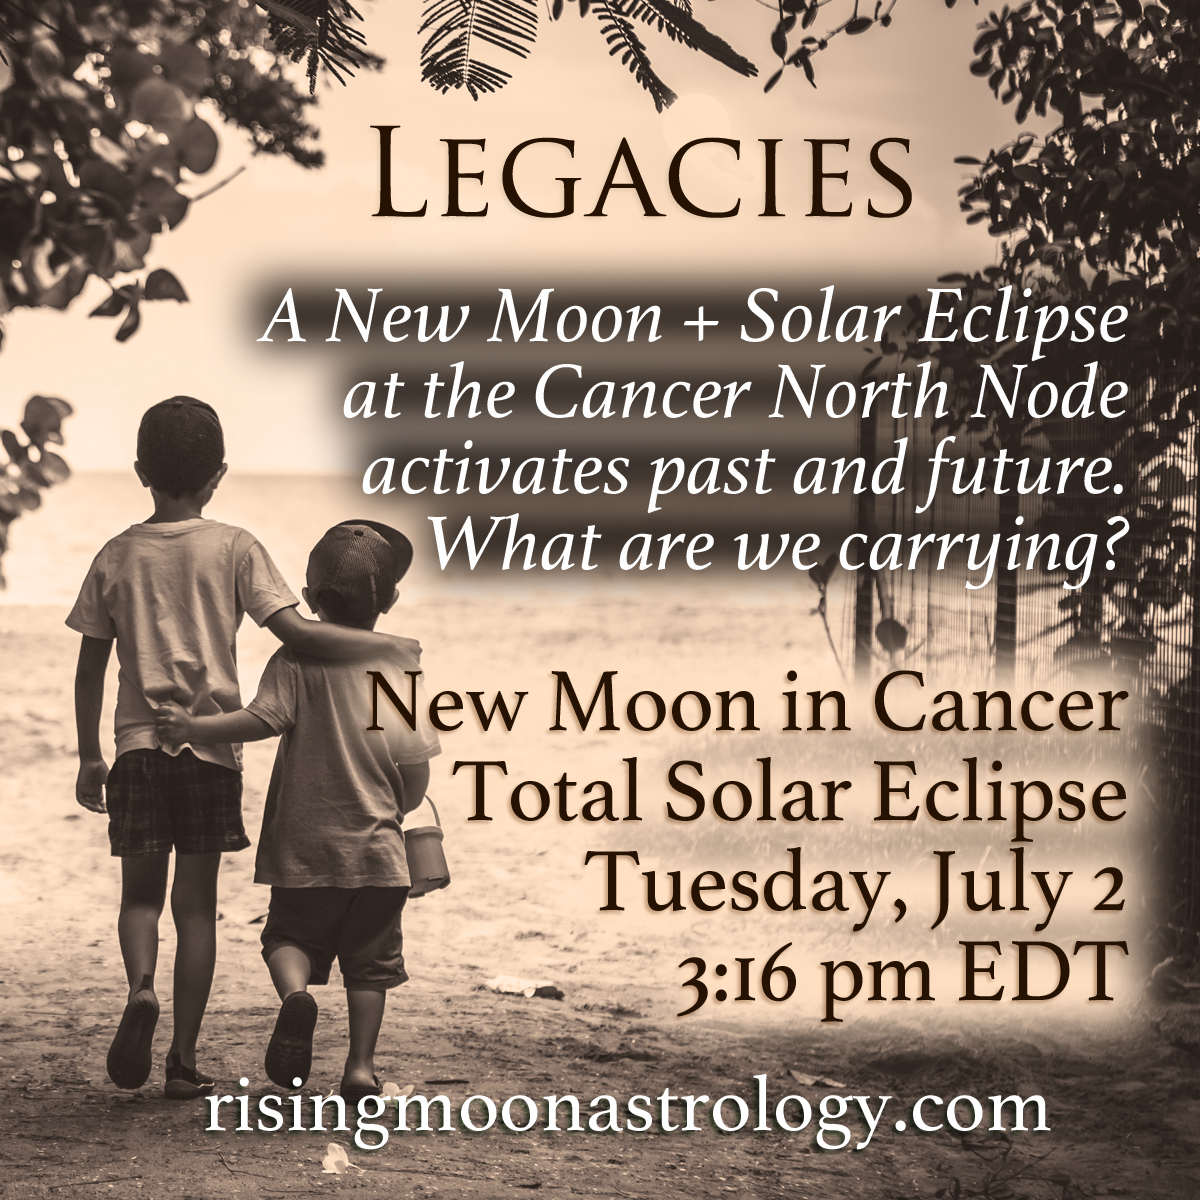 New Moon in Cancer: Legacies